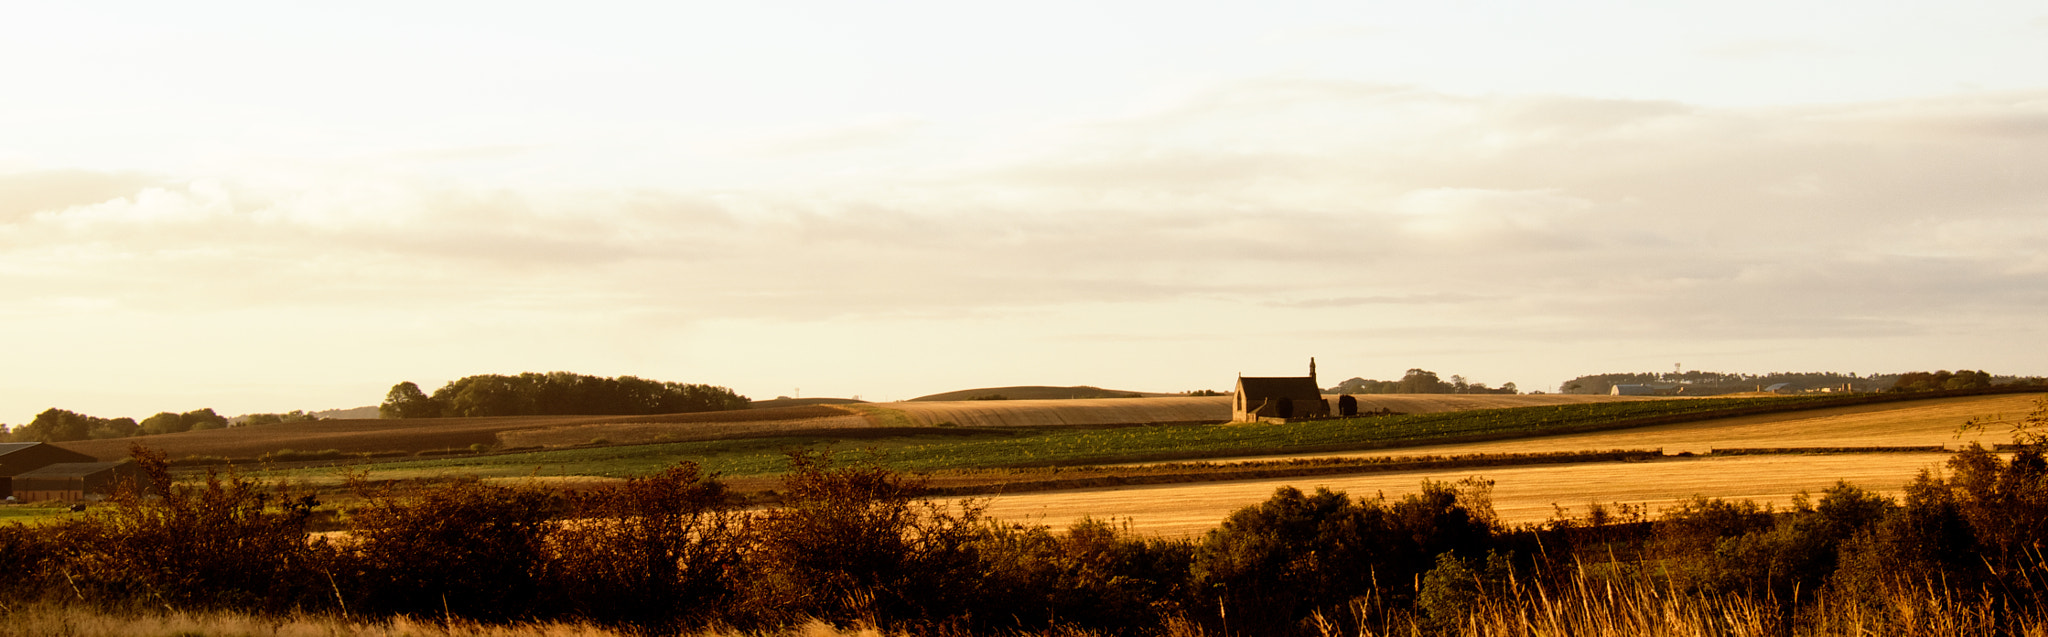 Photograph Church in the Fields by Dan Goldberger on 500px